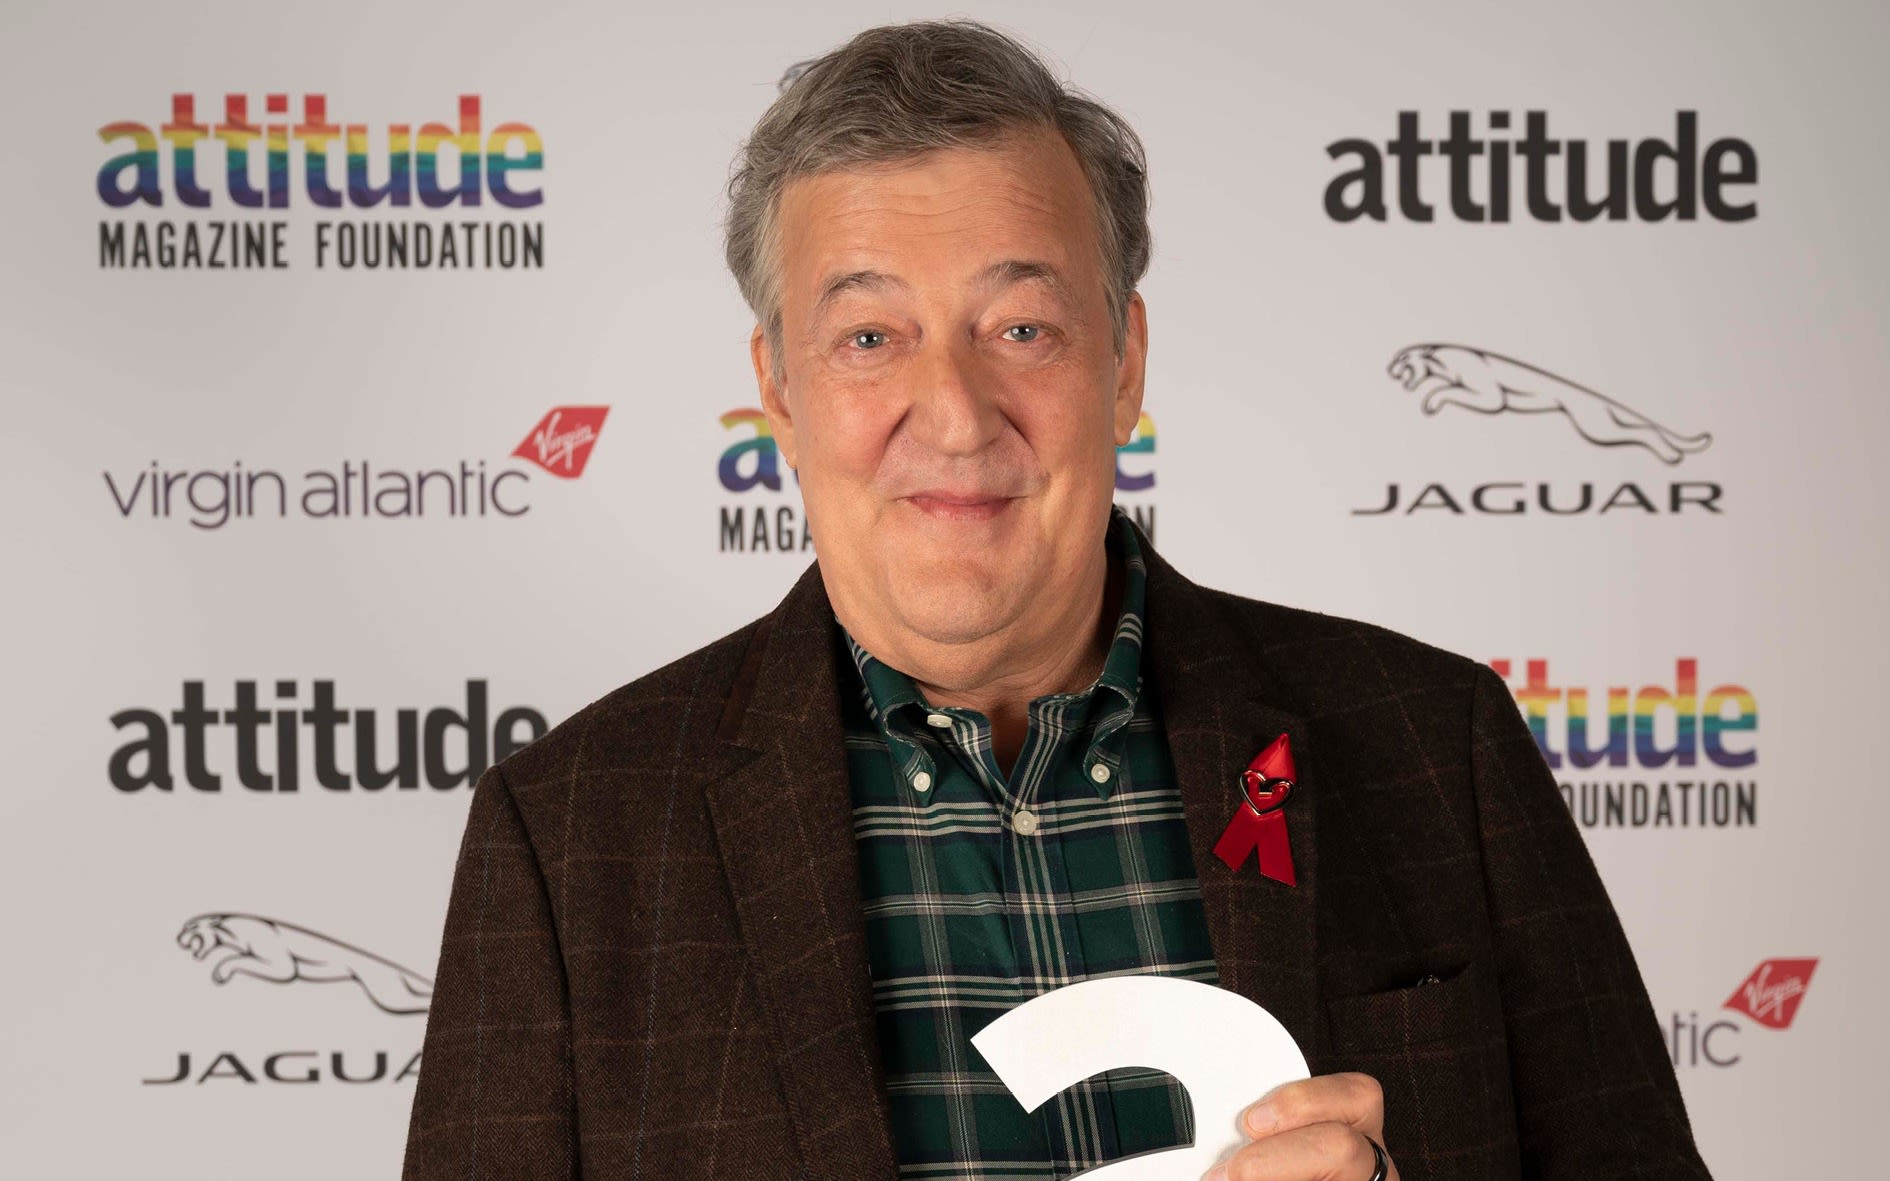 Stephen Fry at the Virgin Atlantic Attitude Awards 2020